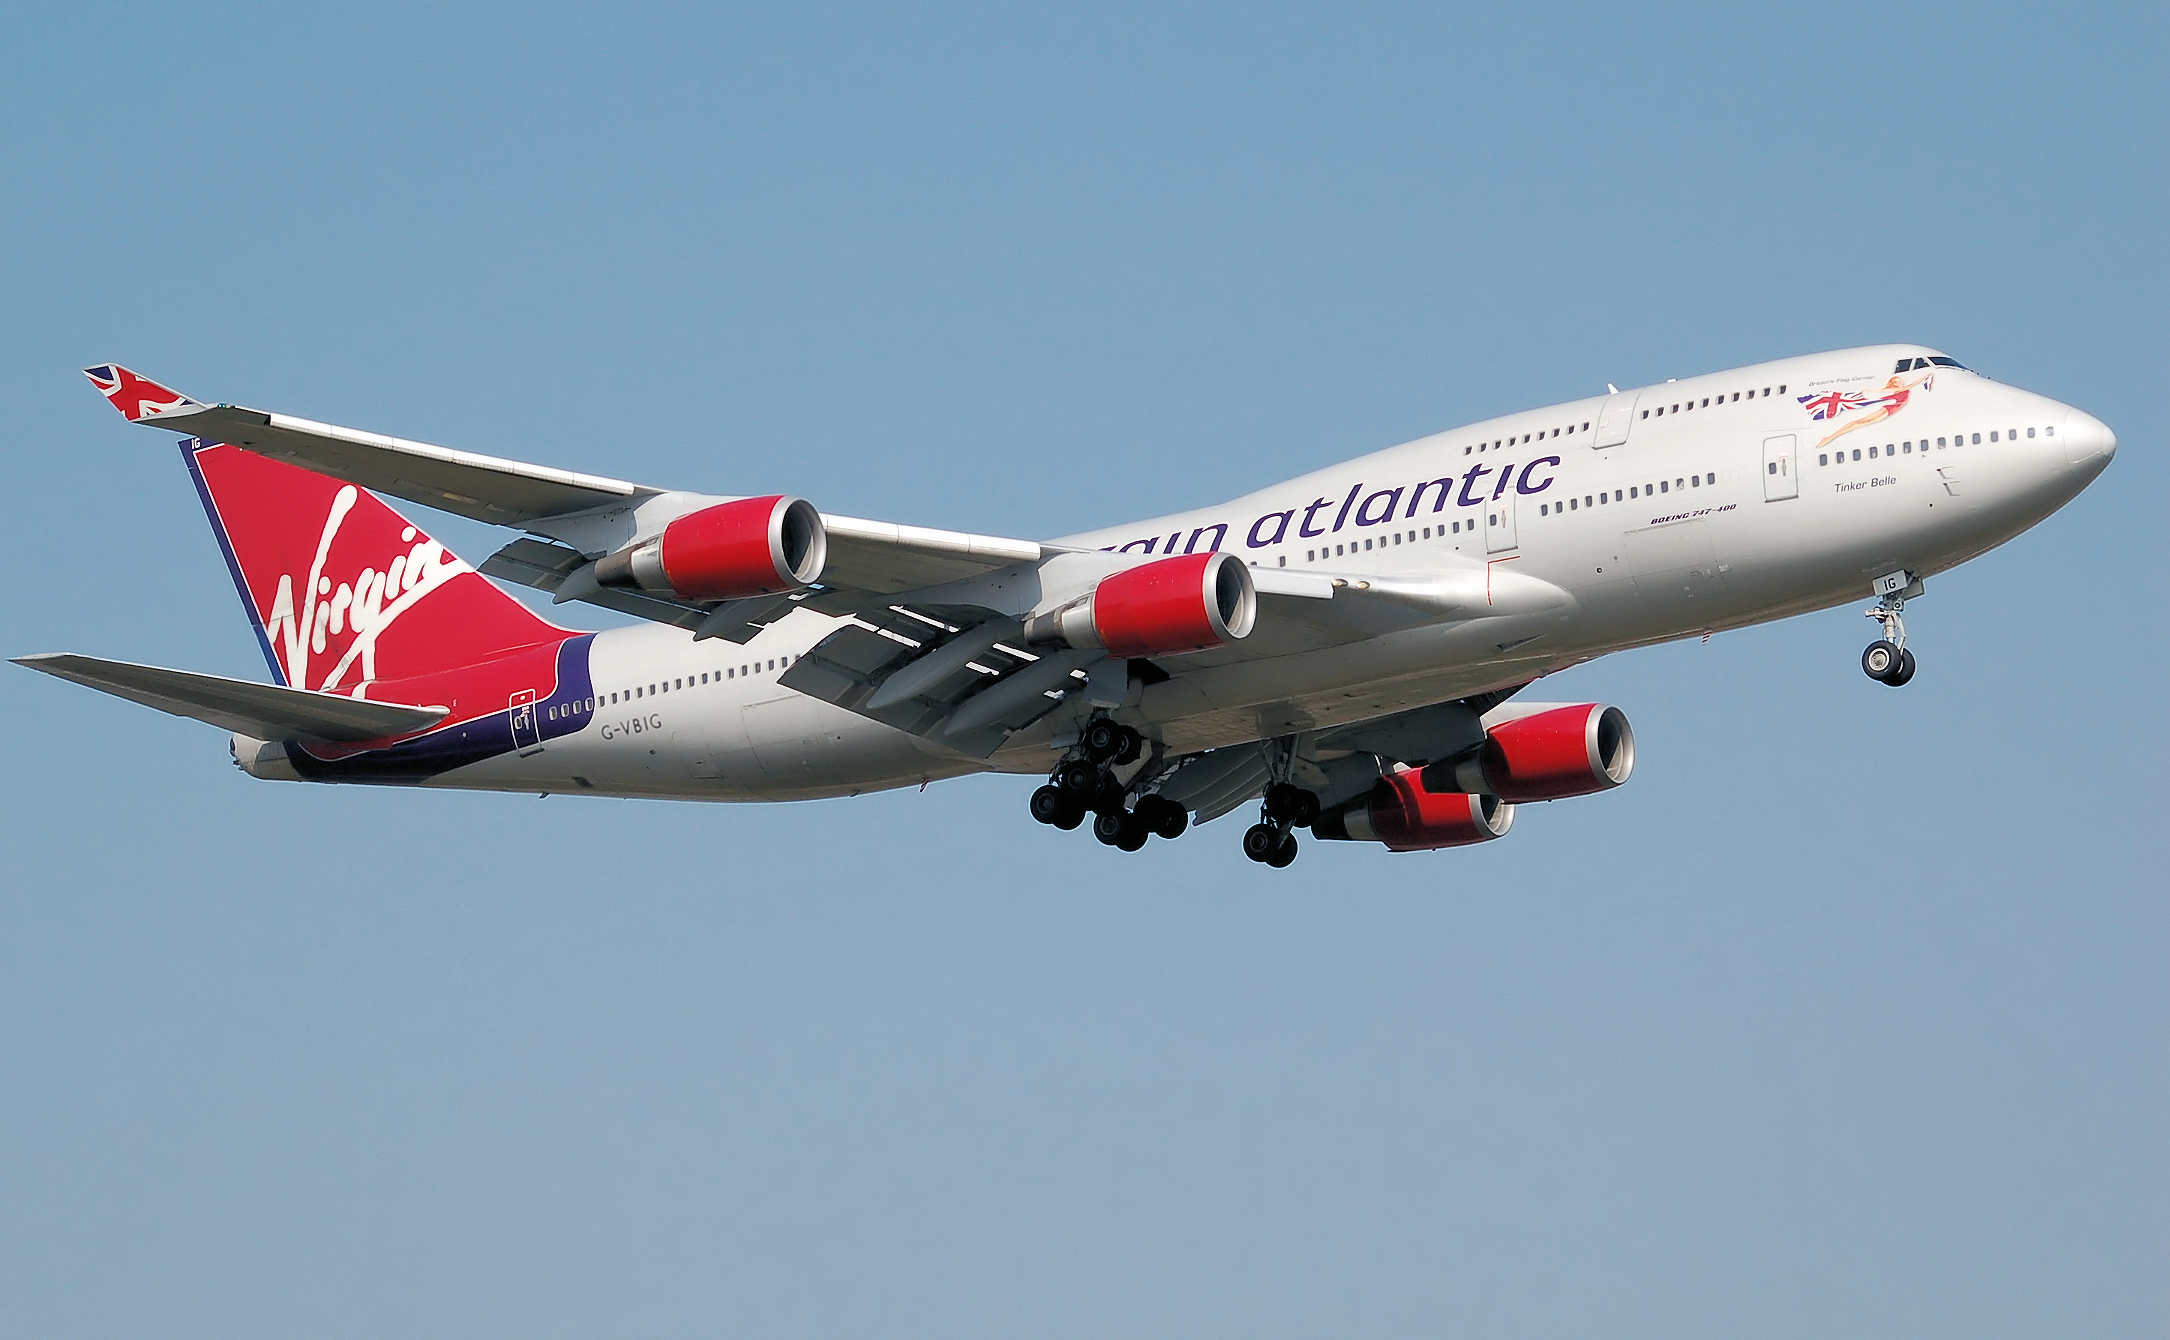 virgin_atlantic_b747-400_g-vbig_arp